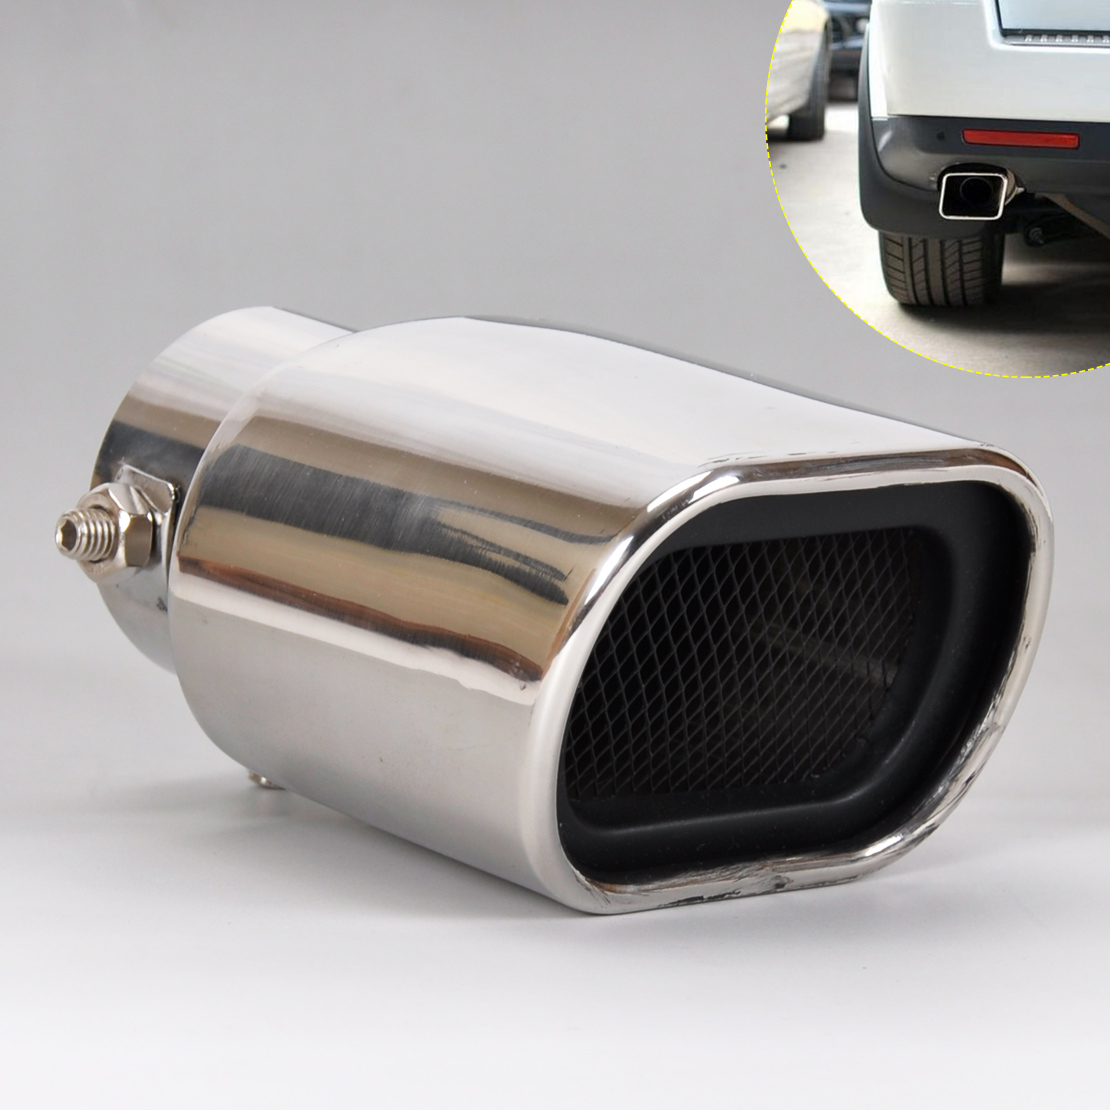 CITALL 1Pc Universal Straight Stainless Steel Exhaust Tail Rear Muffler Tip Pipe for VW Nissan Peugeot Toyota Mini Rover Skoda